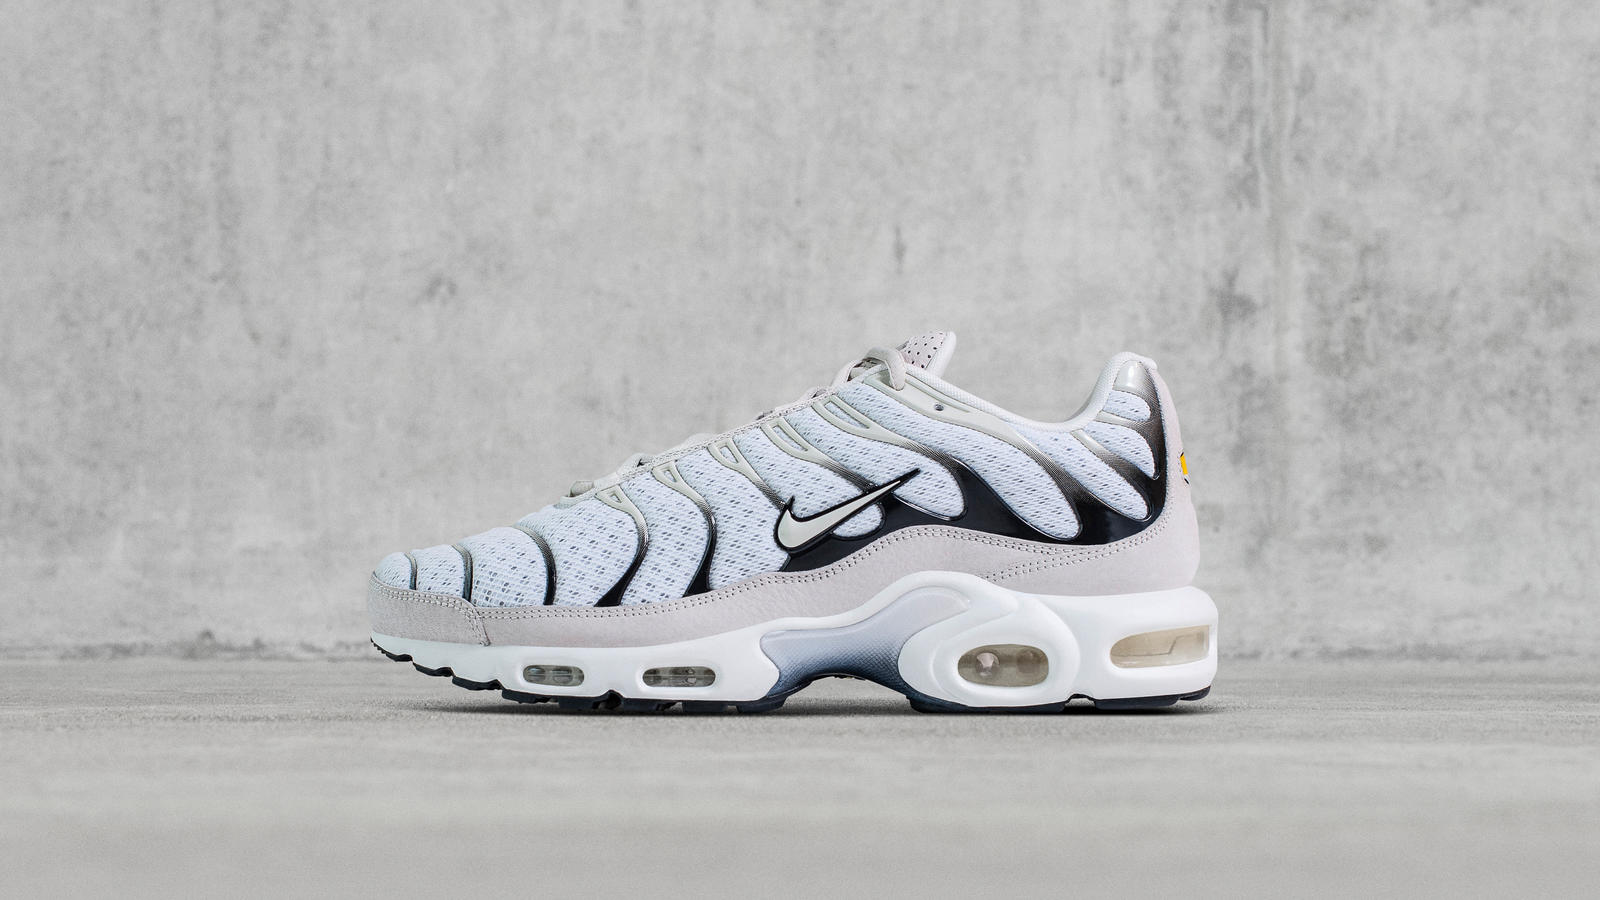 nikelab air max plus 2